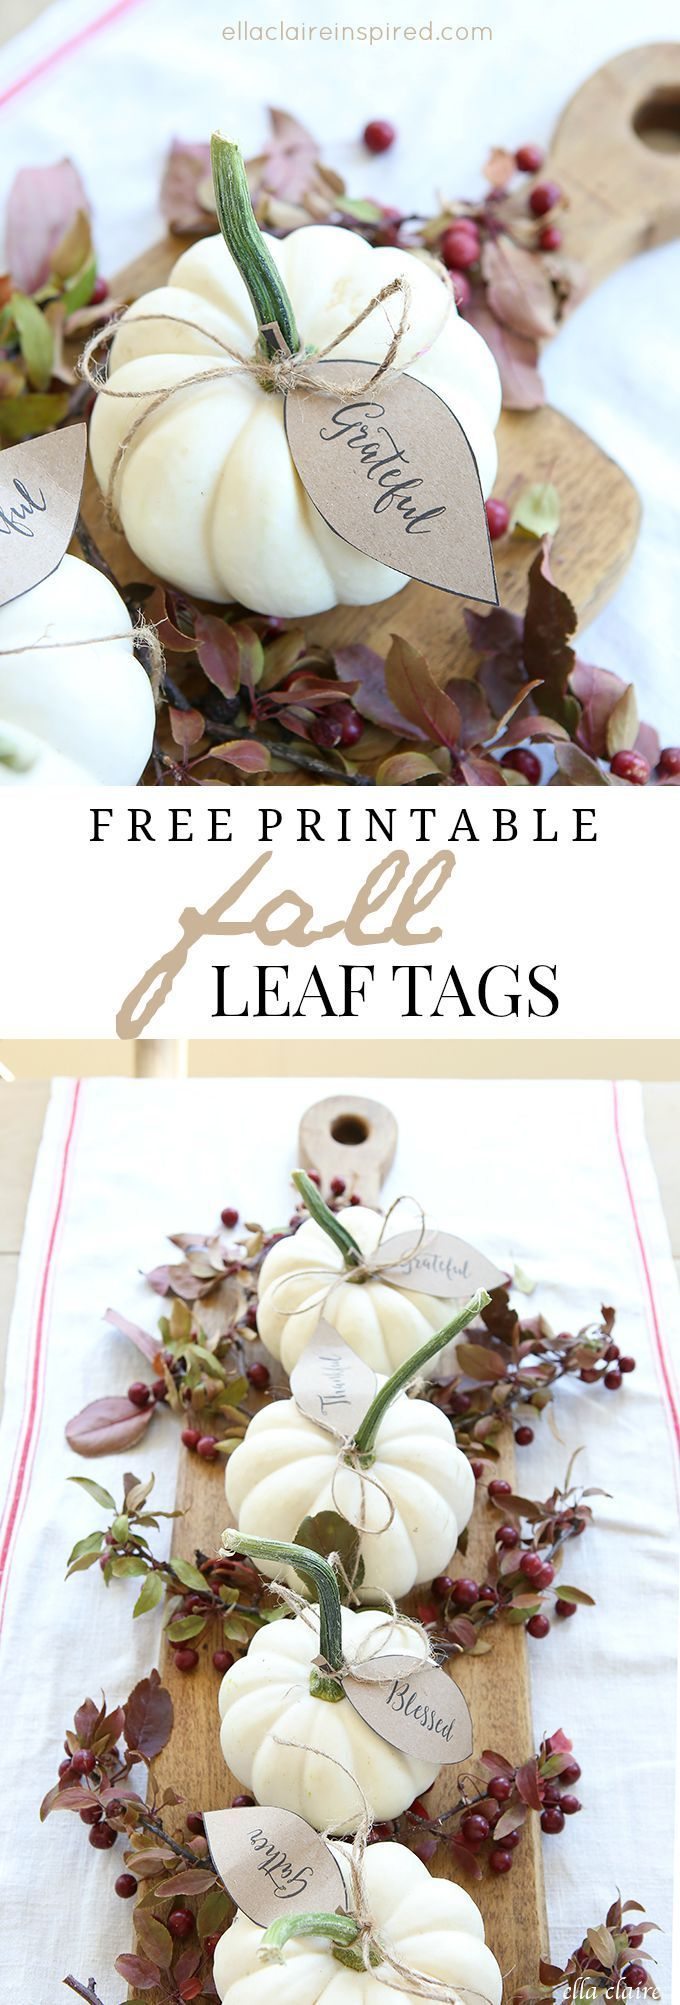 Diy thanksgiving decor pinterest - Pumpkin Leaves Free Printable Thanksgiving Tablescapesthanksgiving Decorationsthanksgiving